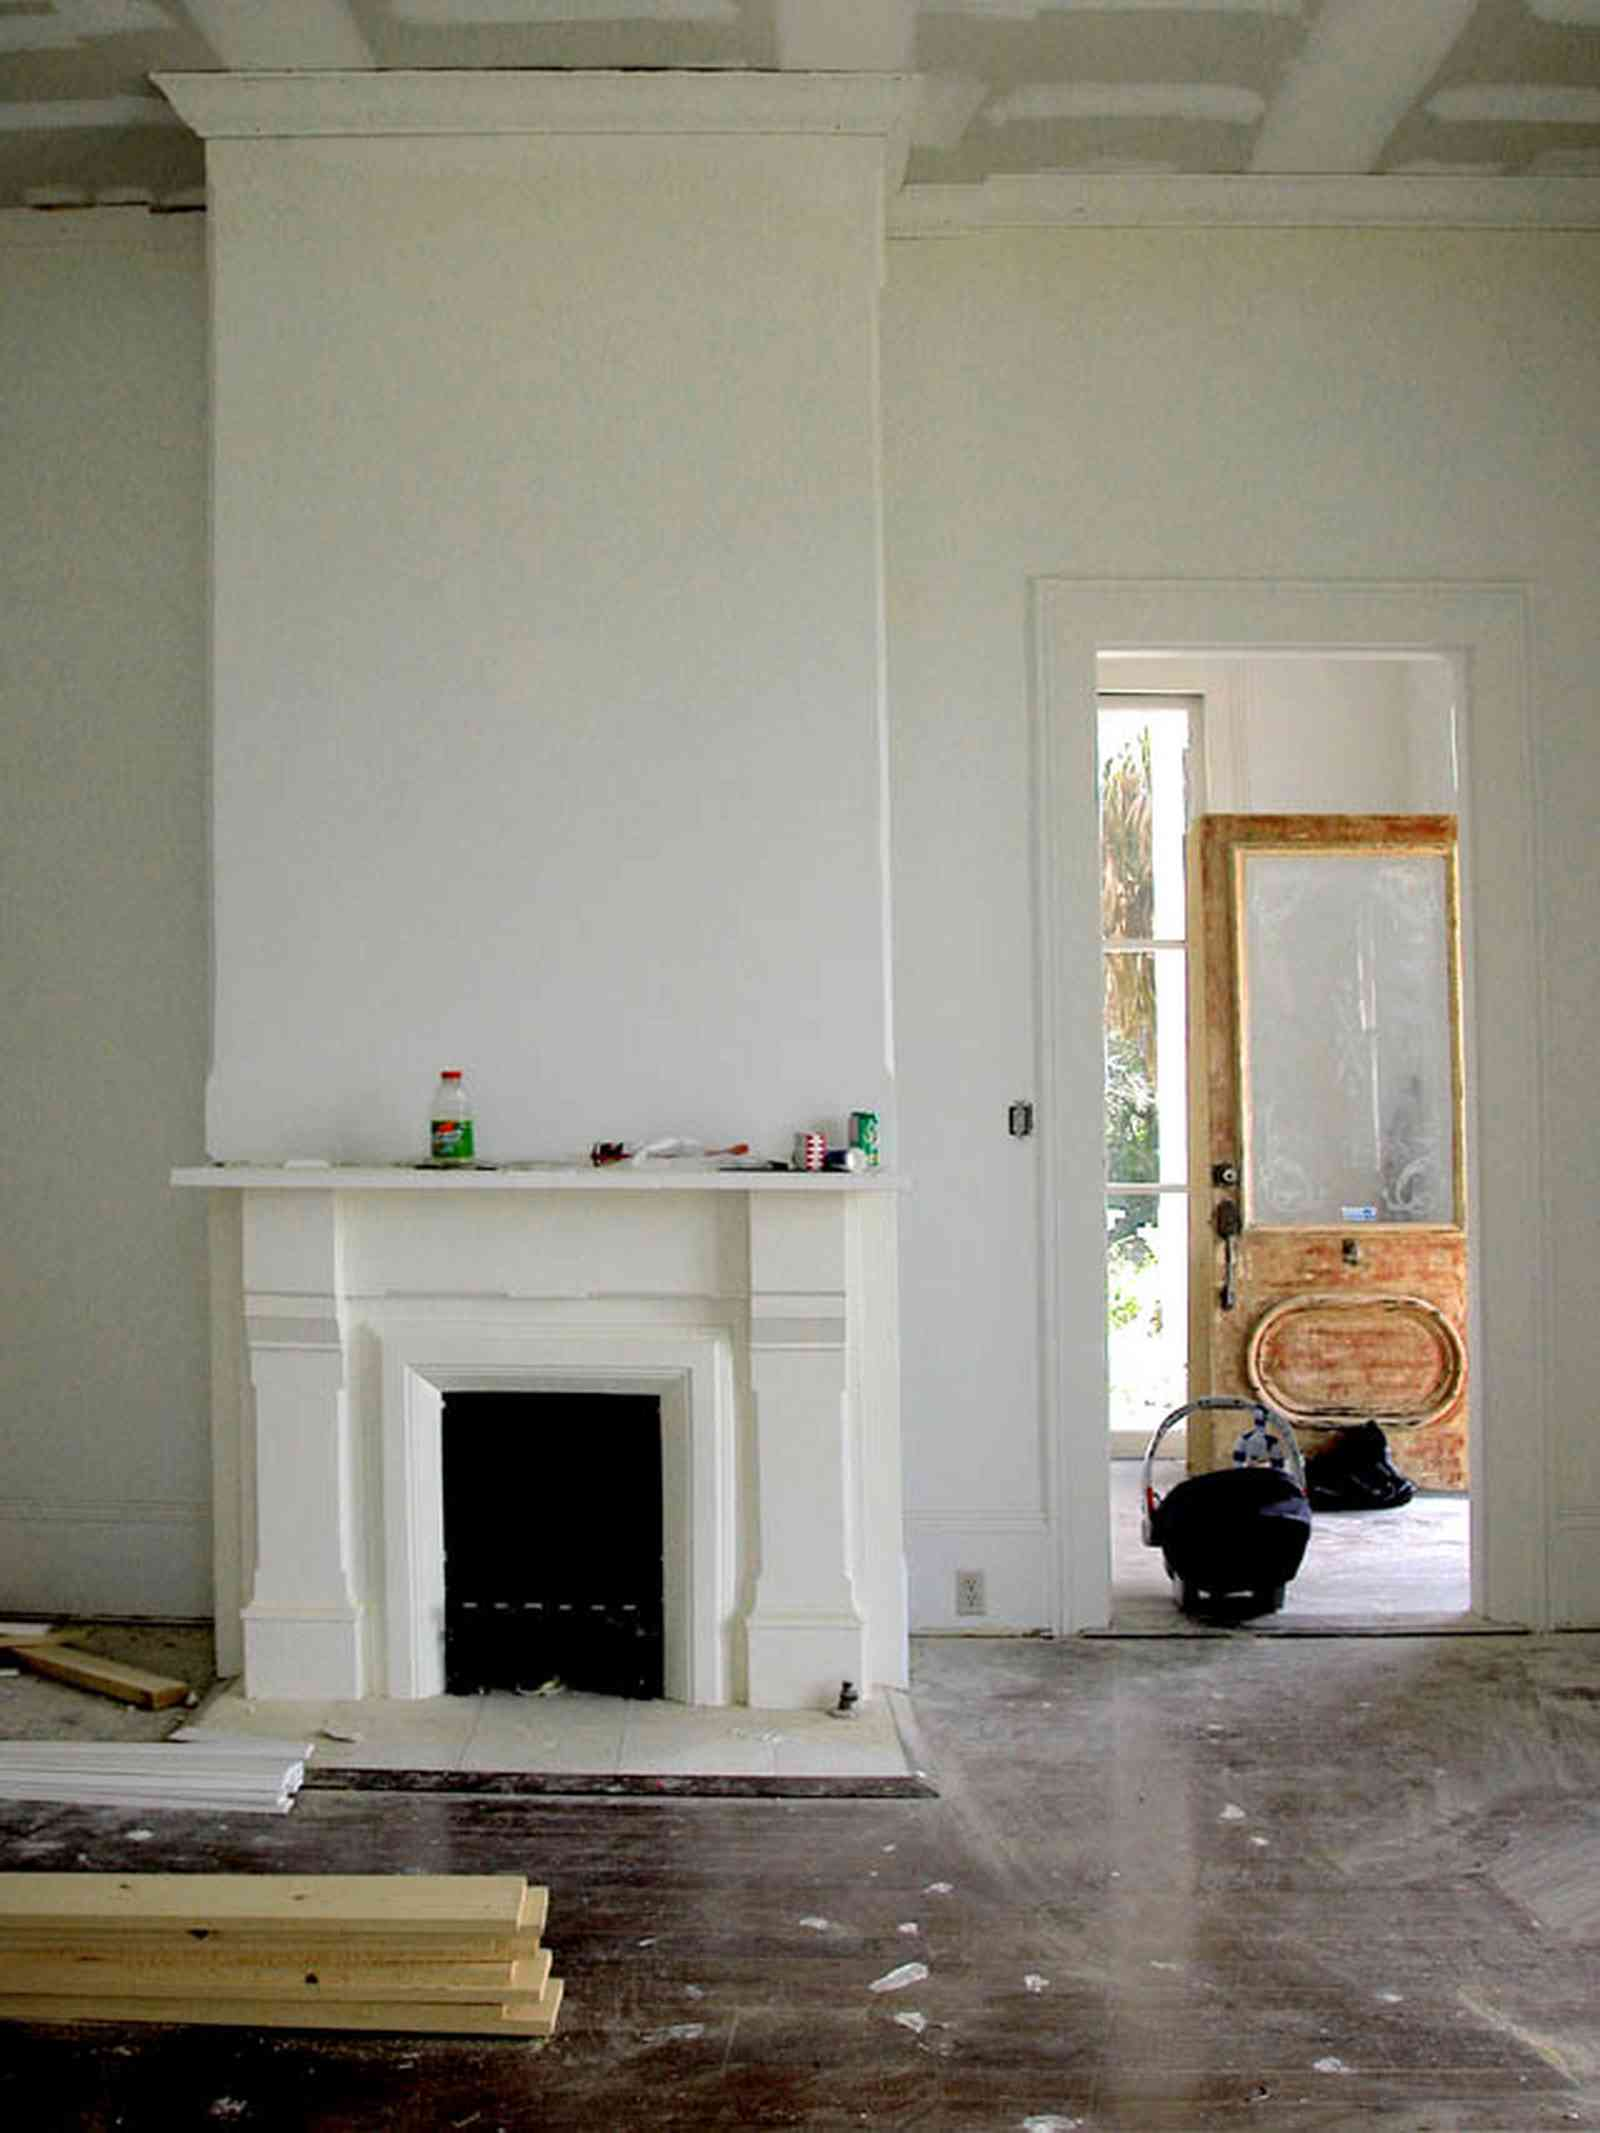 North-Hill:-200-West-Jackson-Street_03.jpg:  mantel, heart-pine floors, etched glass door, victorian structure